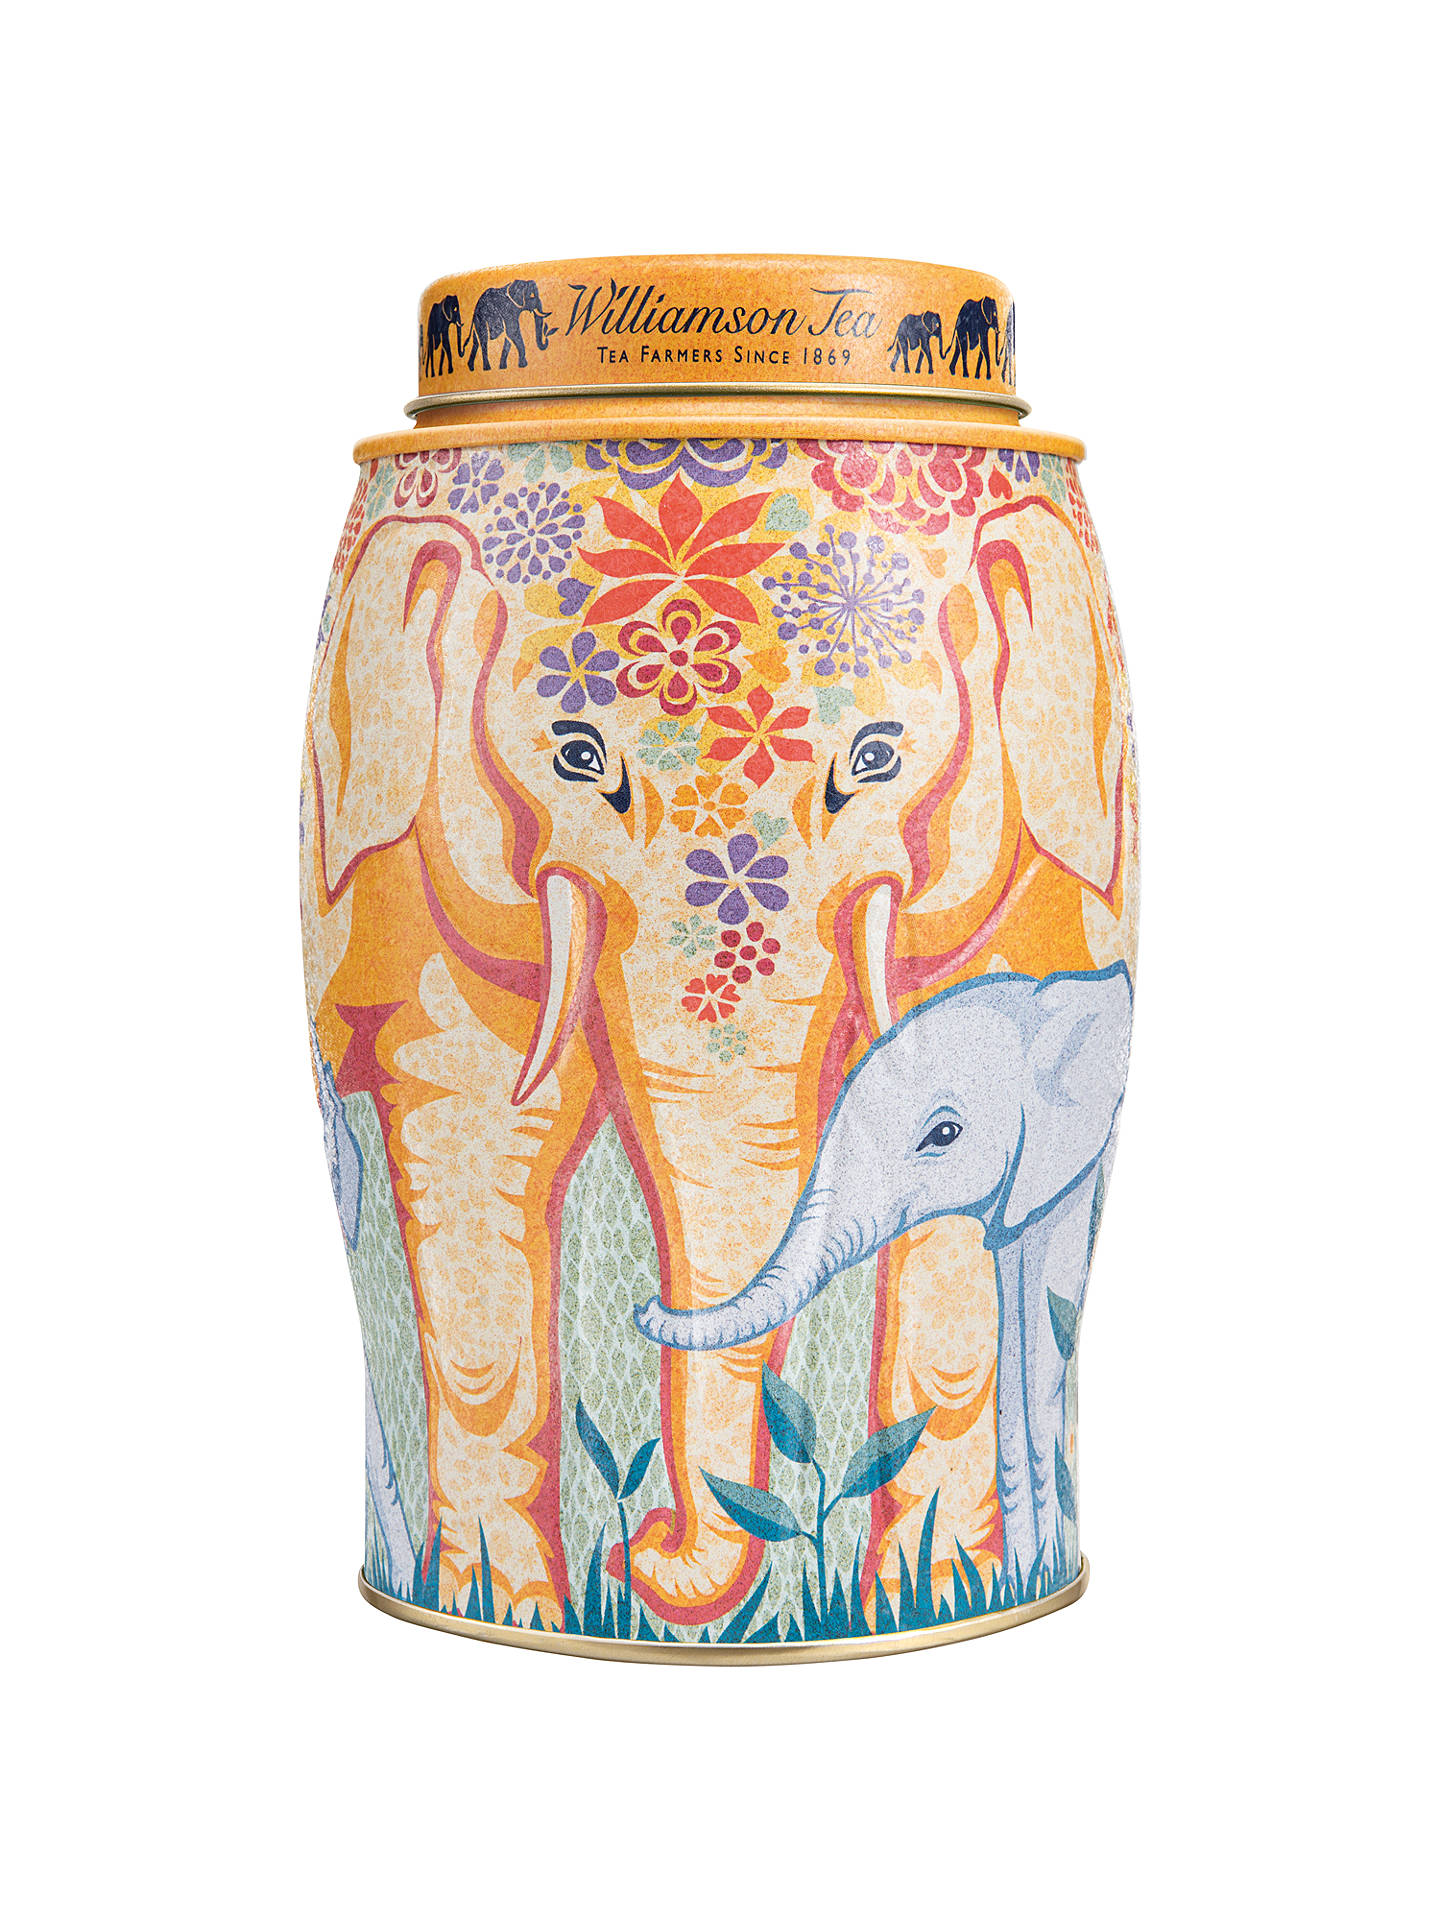 cdeaf76cd9b1 Buy Williamson Tea Mother   Child Caddy with 20 Kenyan Earth Teabags Online  at johnlewis.